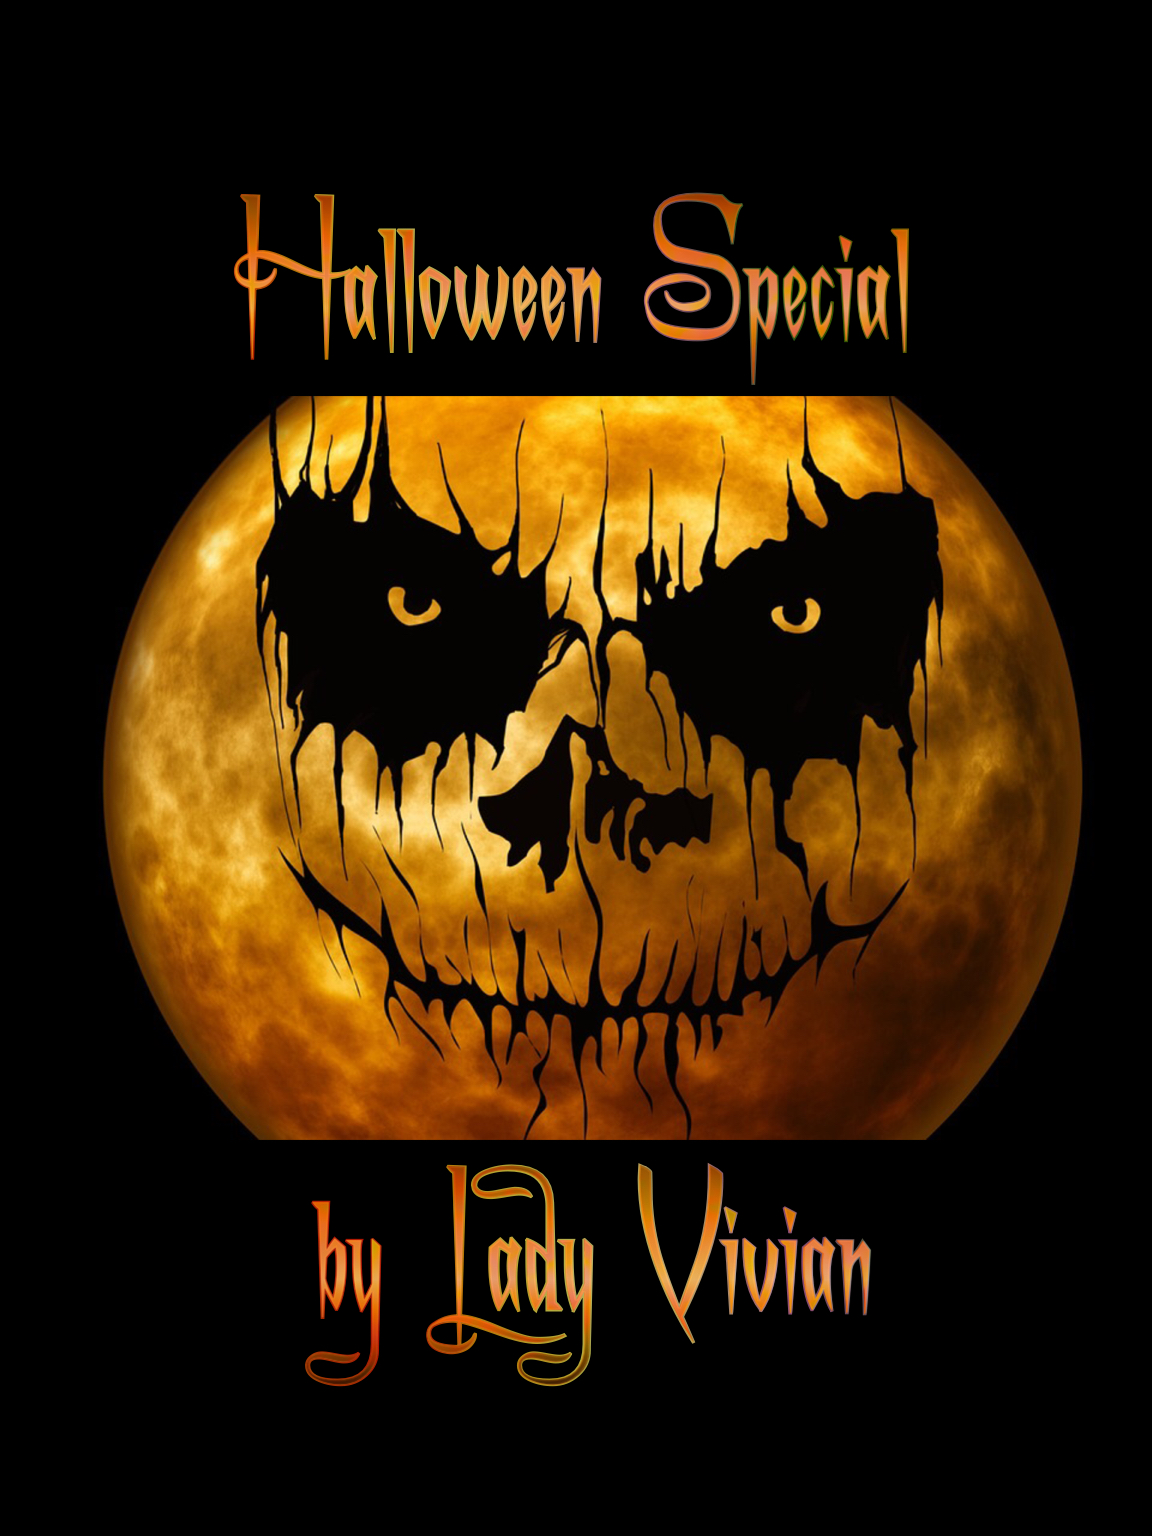 Halloween Special by Lady Vivian